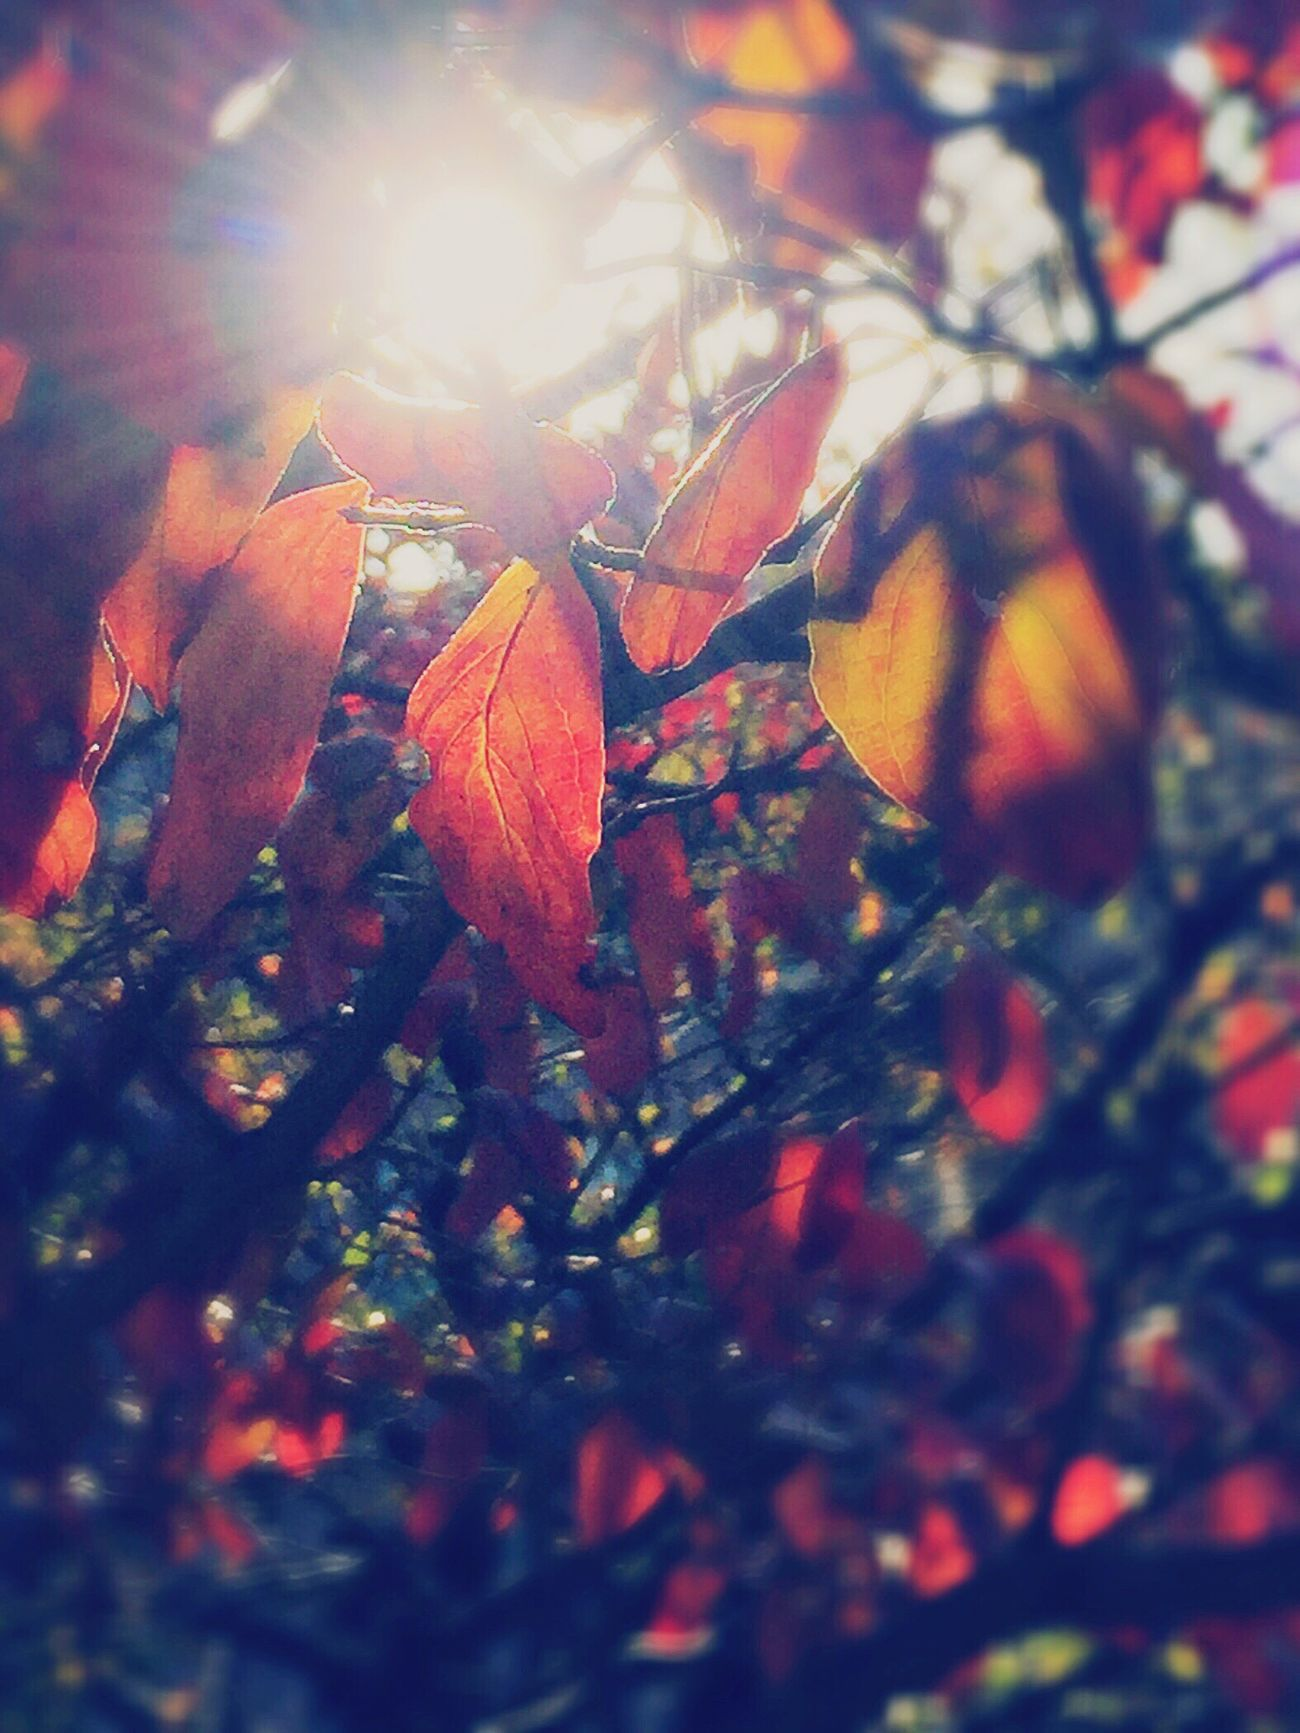 🎵Rebirth (Vancouver Sleep Clinic) Autumn Autumn Colors Autumn Leaves Colored Leaves On The Way Daydreaming Daydream Masako201611 Shadow Shadows & Lights